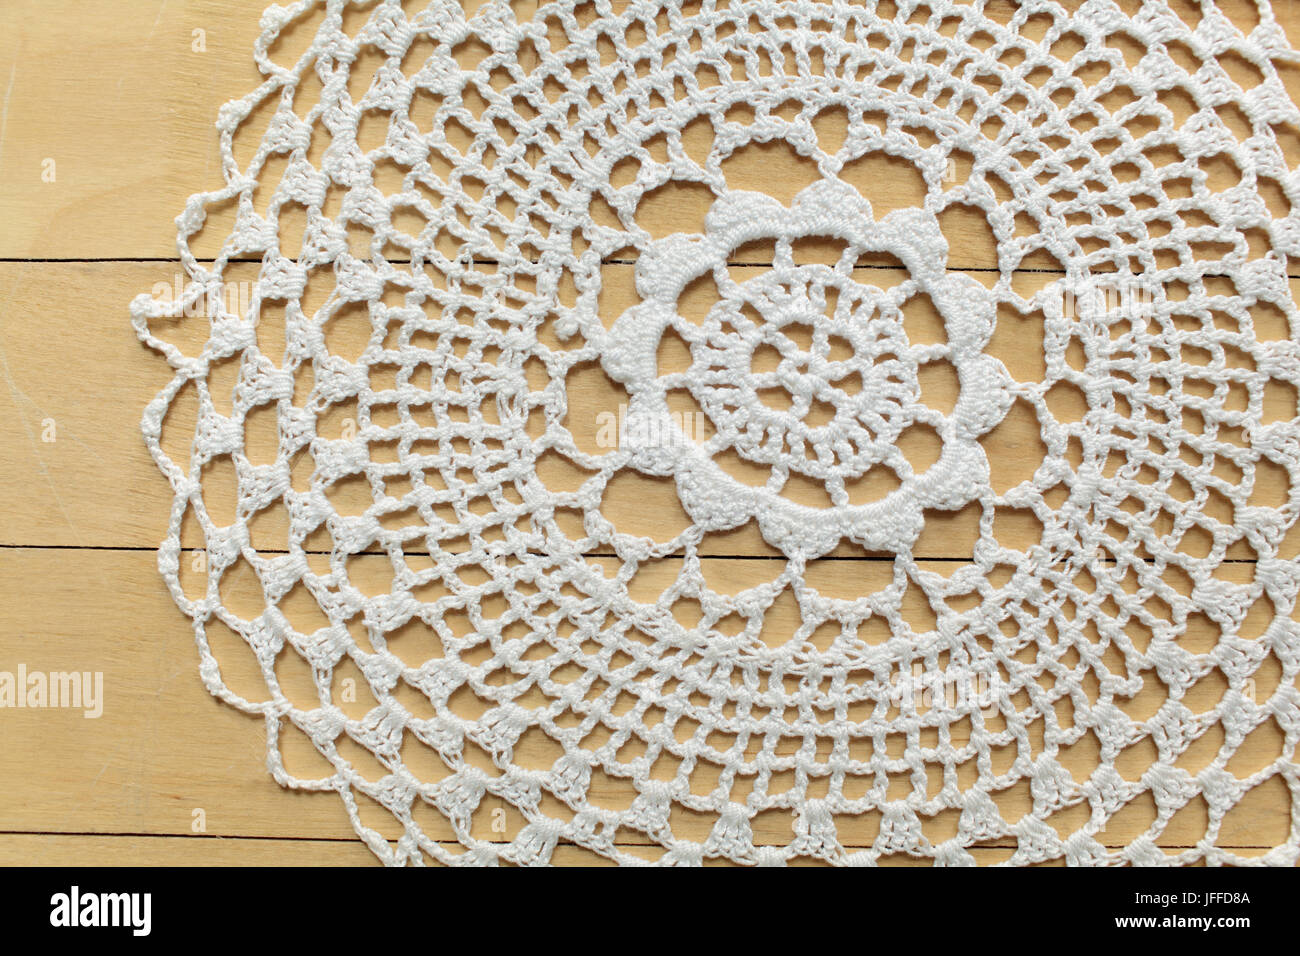 Lace openwork pattern - Stock Image